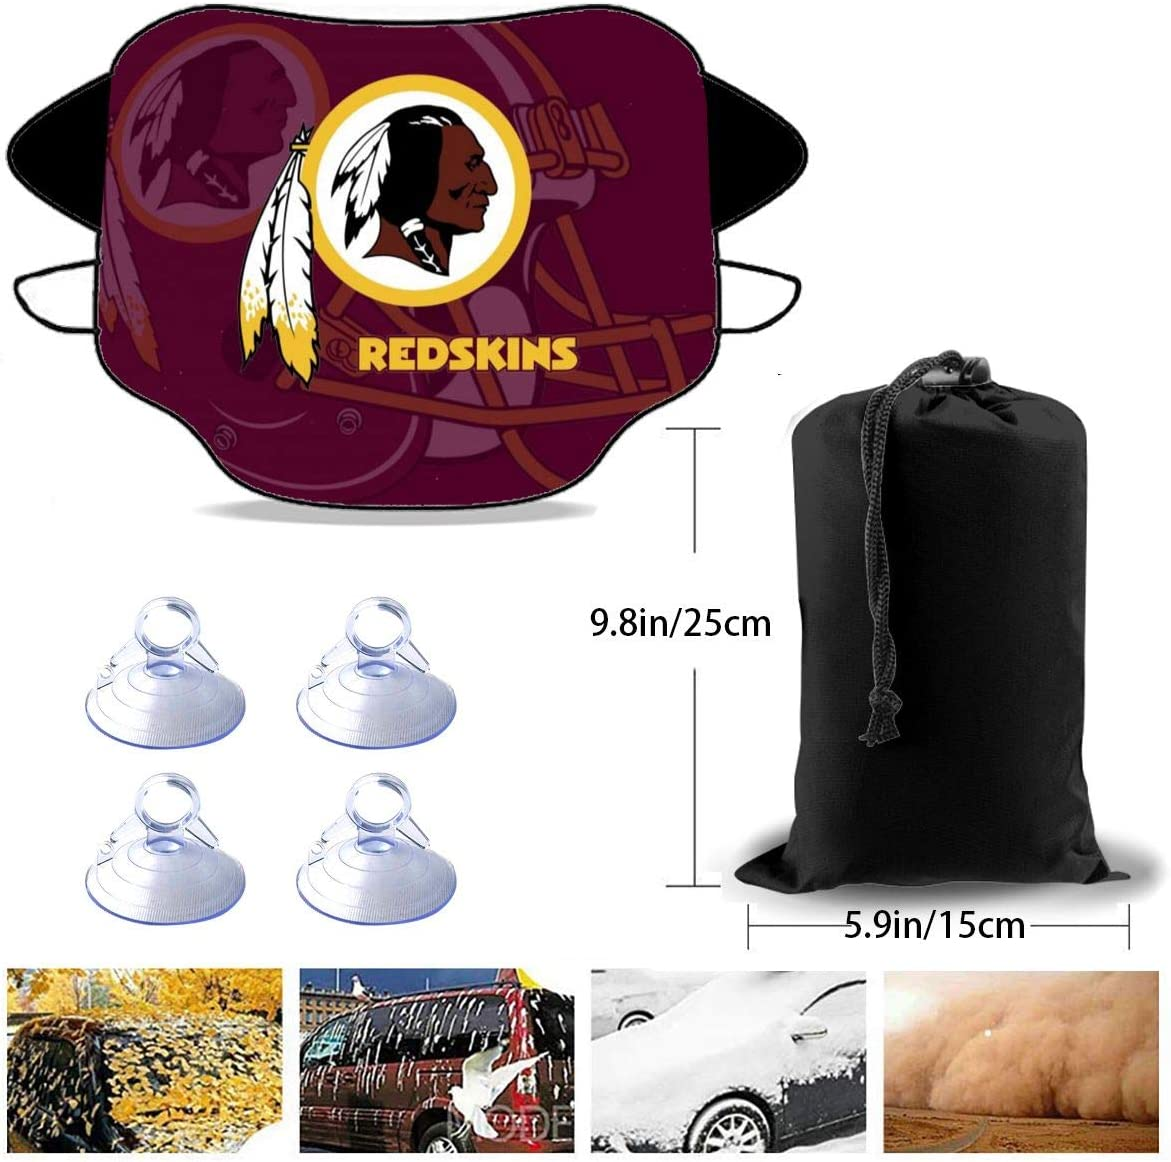 BXNOOD Car Front Windshield Sun Shade Cover New Orleans Saints Car Windsheild Snow Cover Wiper Protector UV Rays Sun Visor Keeps Vehicle Cooler